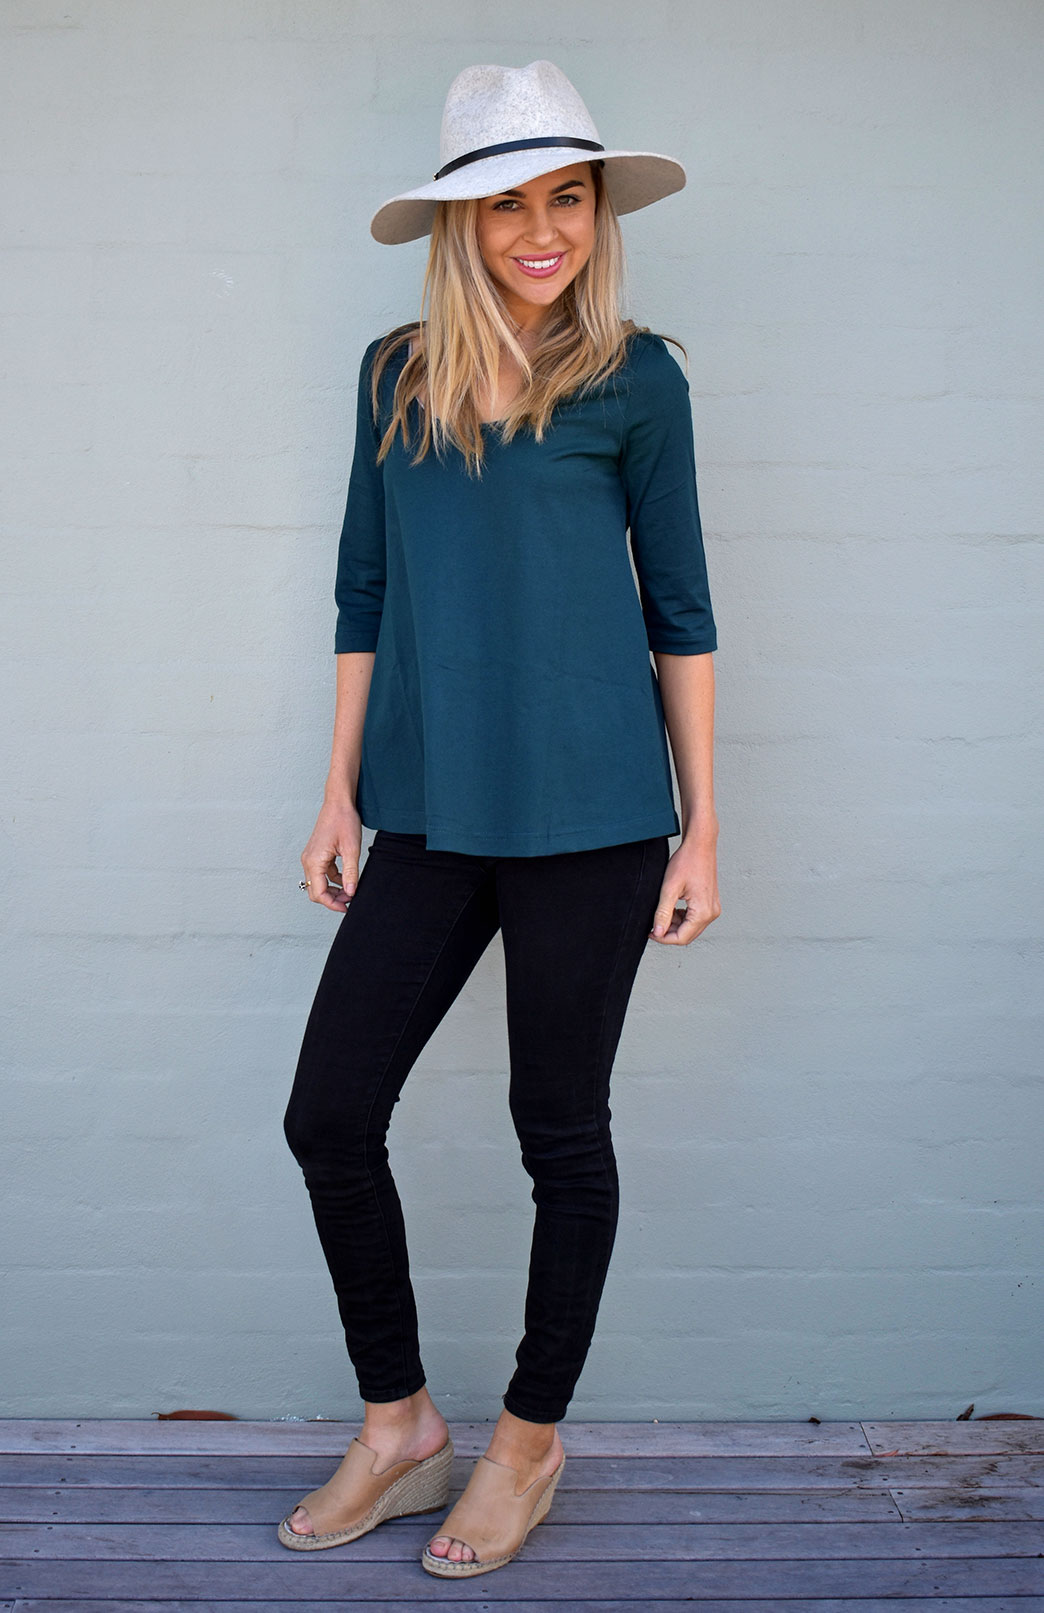 Rennie Top - Organic Cotton - Women's Organic Cotton Deep Sea Green 3/4 Sleeved Swing Top with Scooped Neckline - Smitten Merino Tasmania Australia